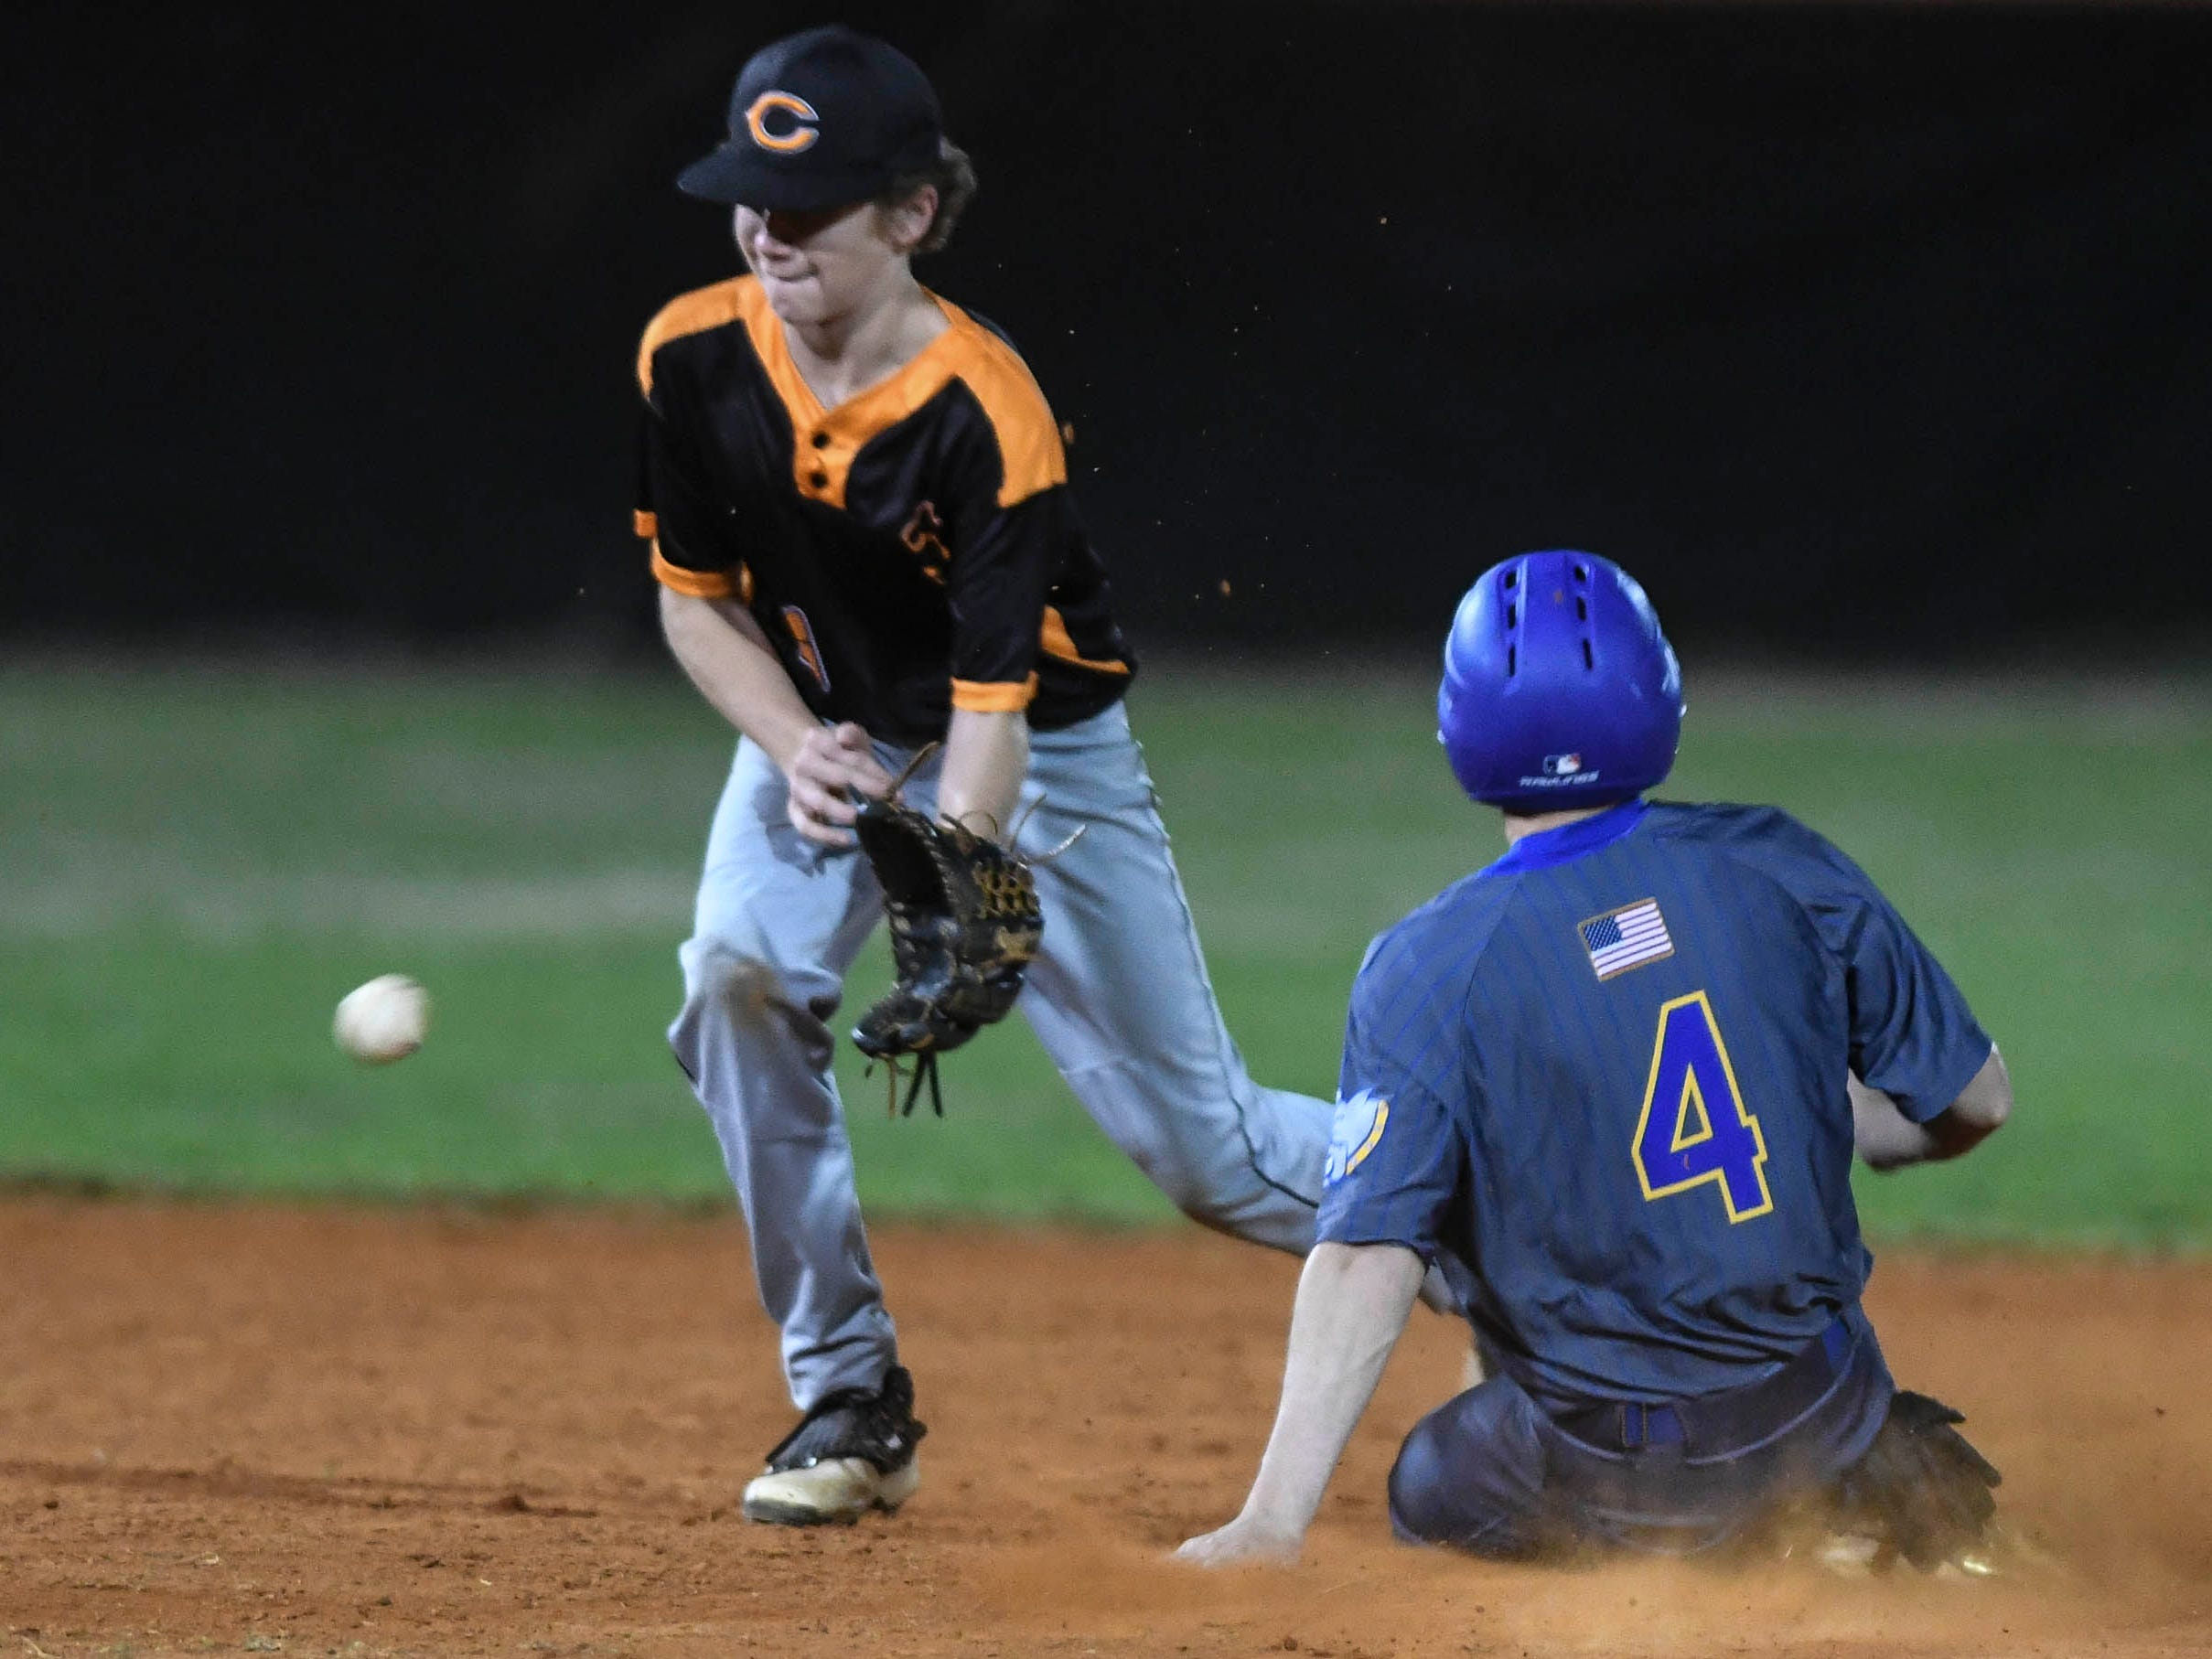 Titusville's Trey Felker makes it to second base before cocoa's Cade Davidson can make the tag during Friday's game.